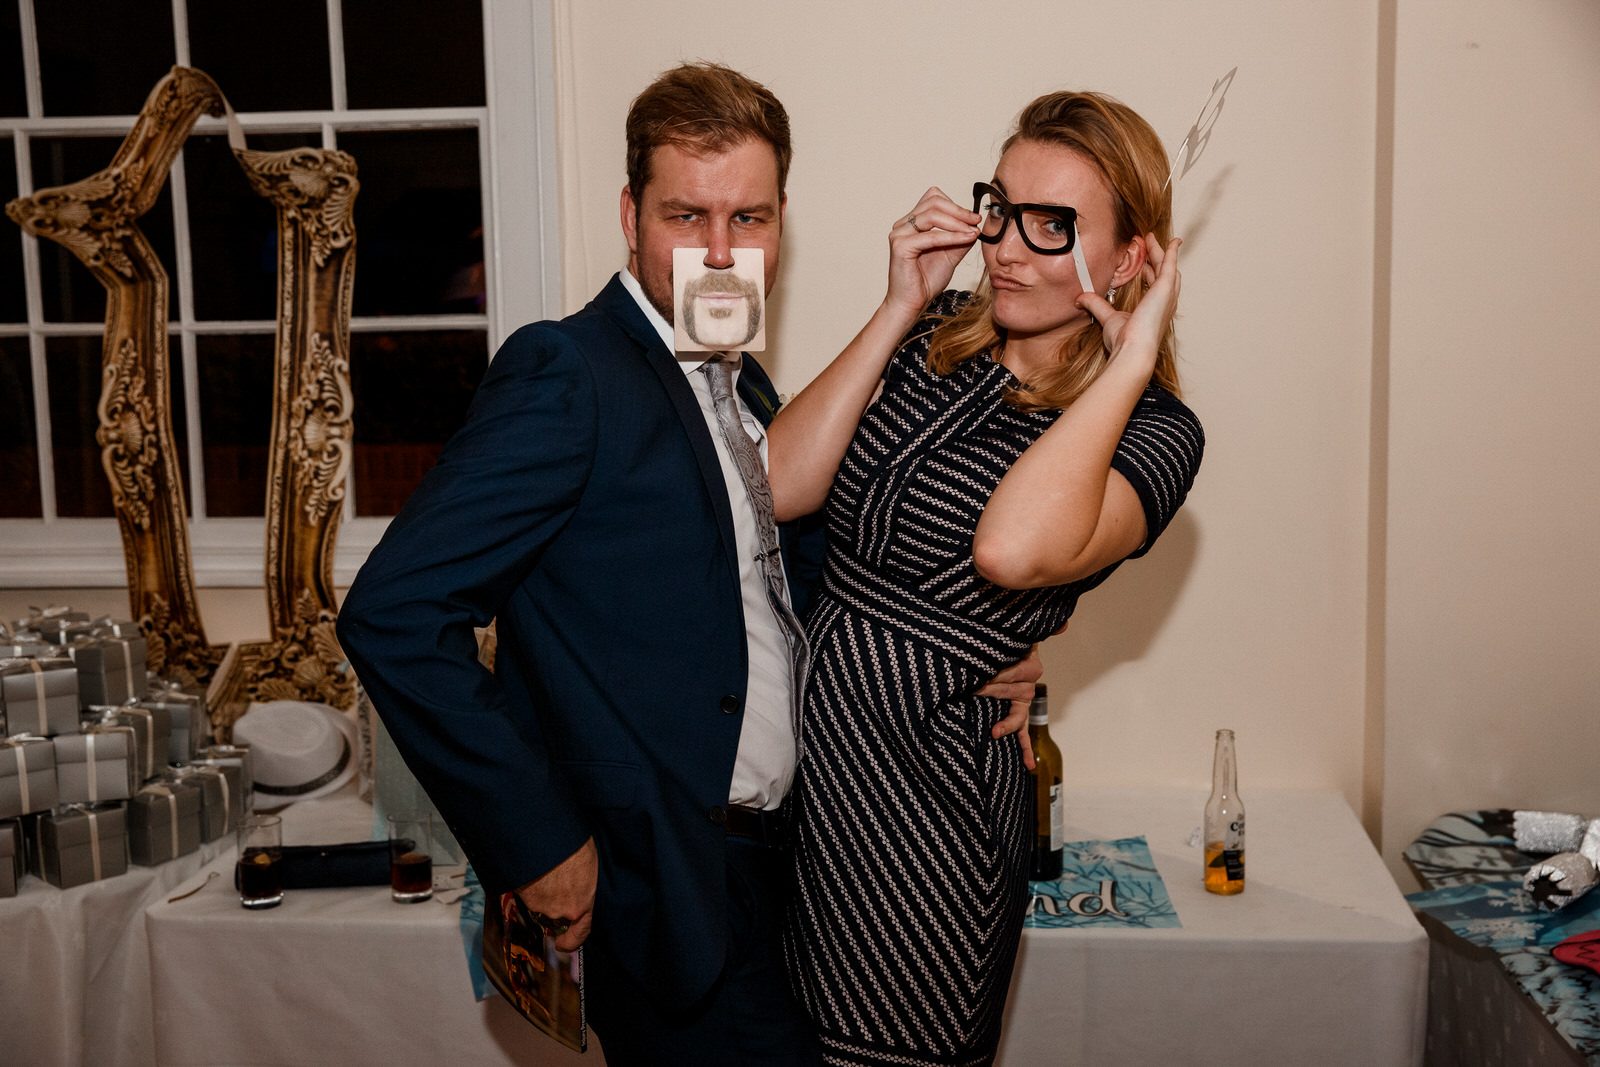 guests with fake moustaches at wedding